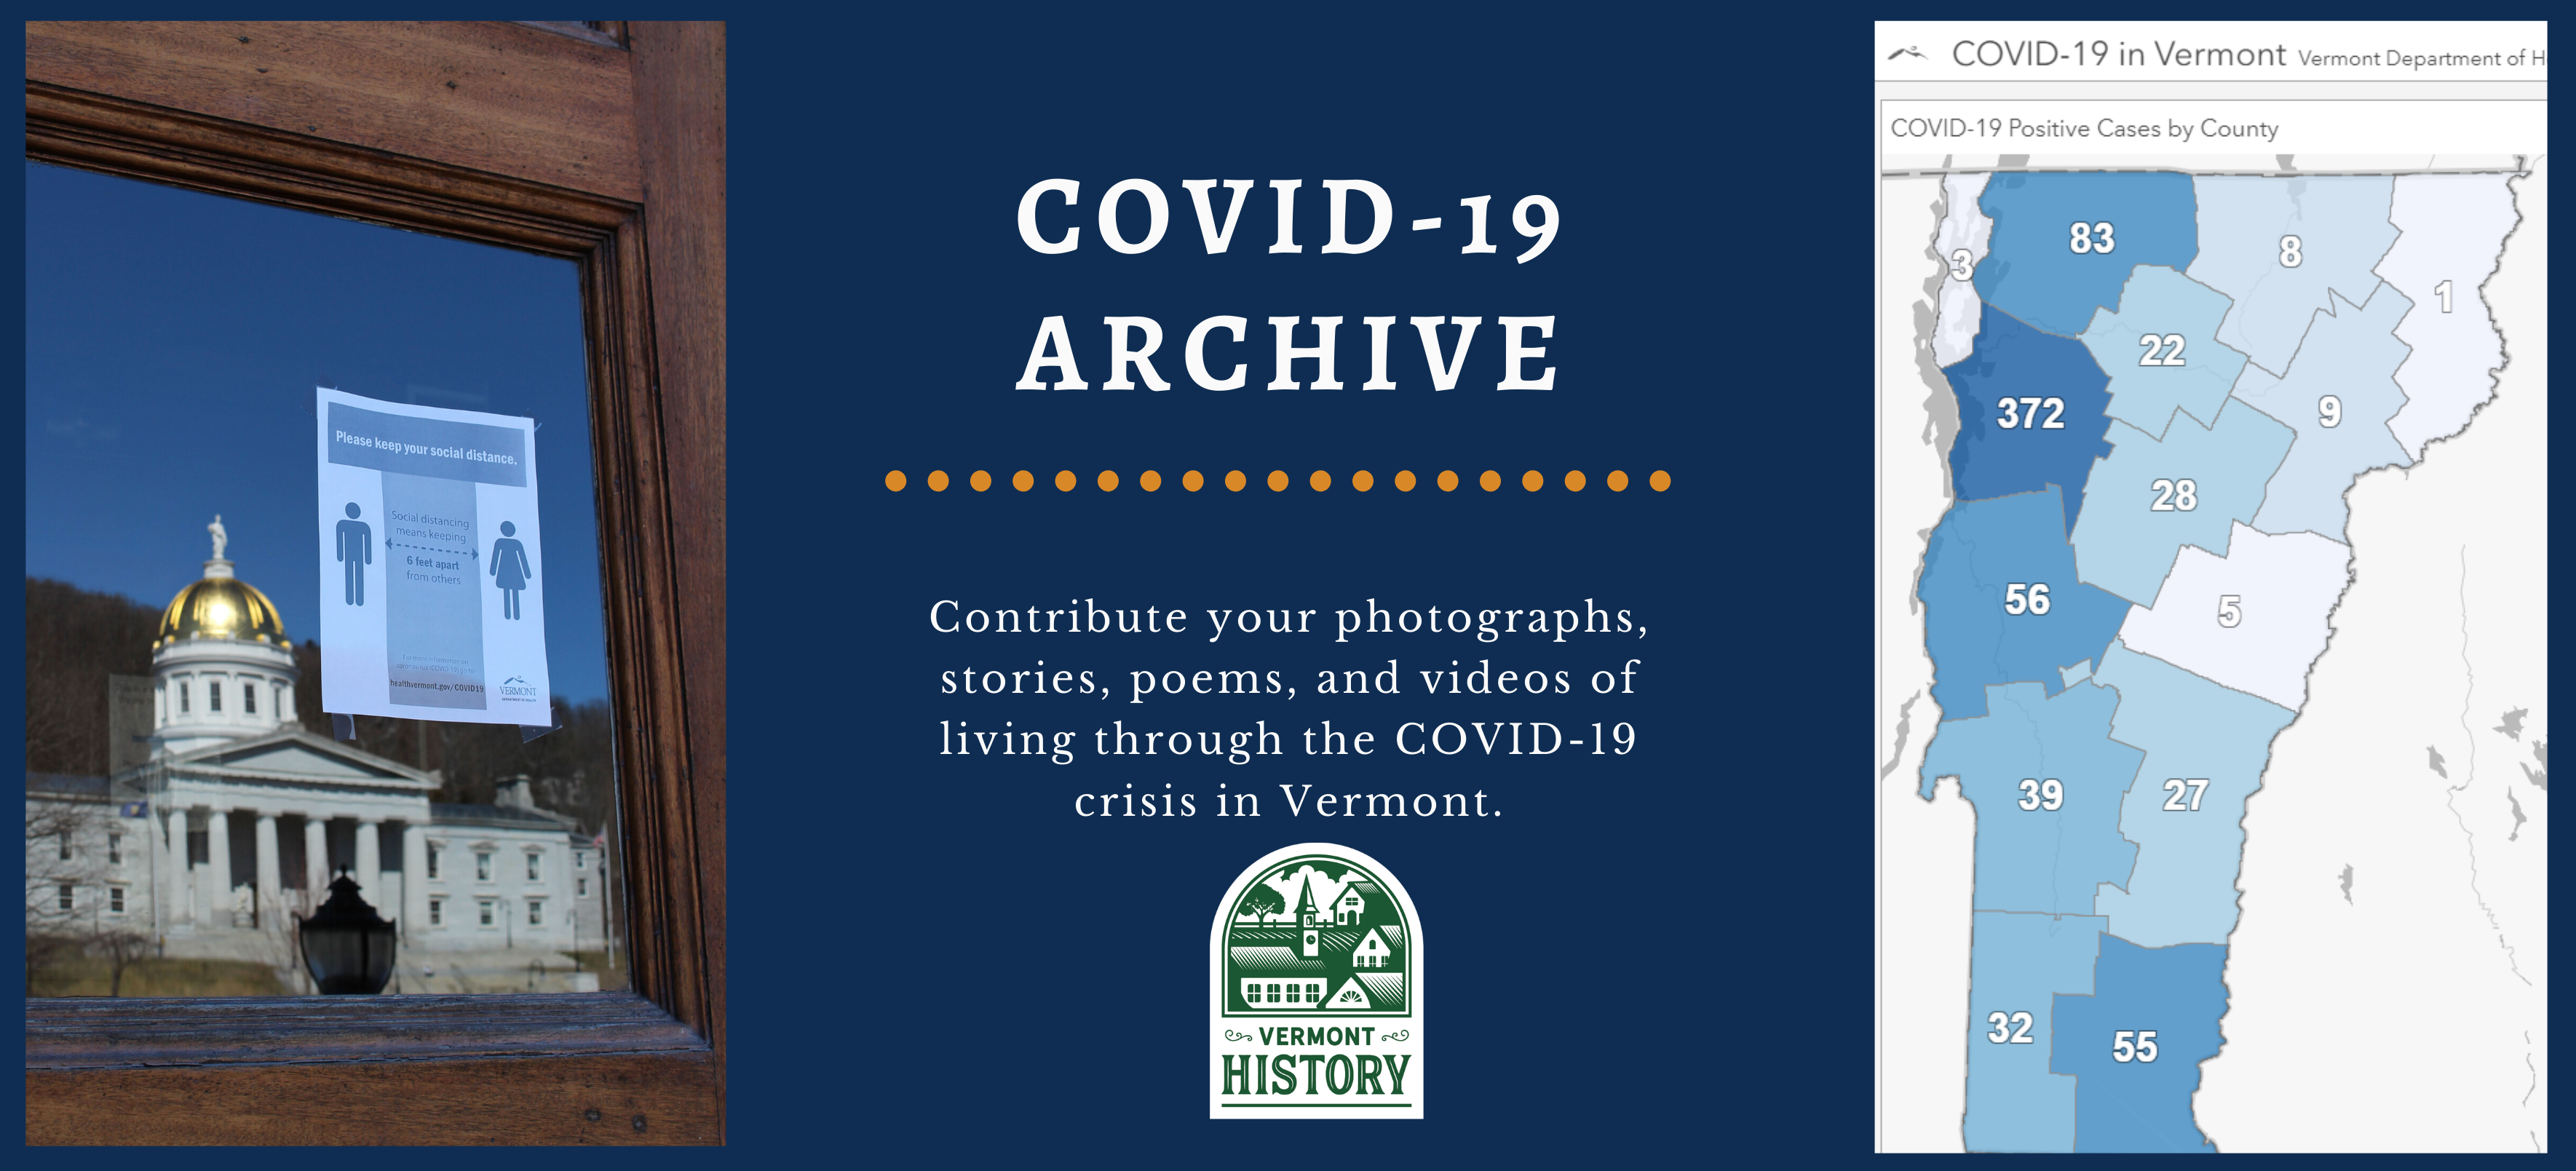 COVID-19 Archive: Contribute your photographs, stories, poems, and videos of living through the COVID-19 crisis in Vermont